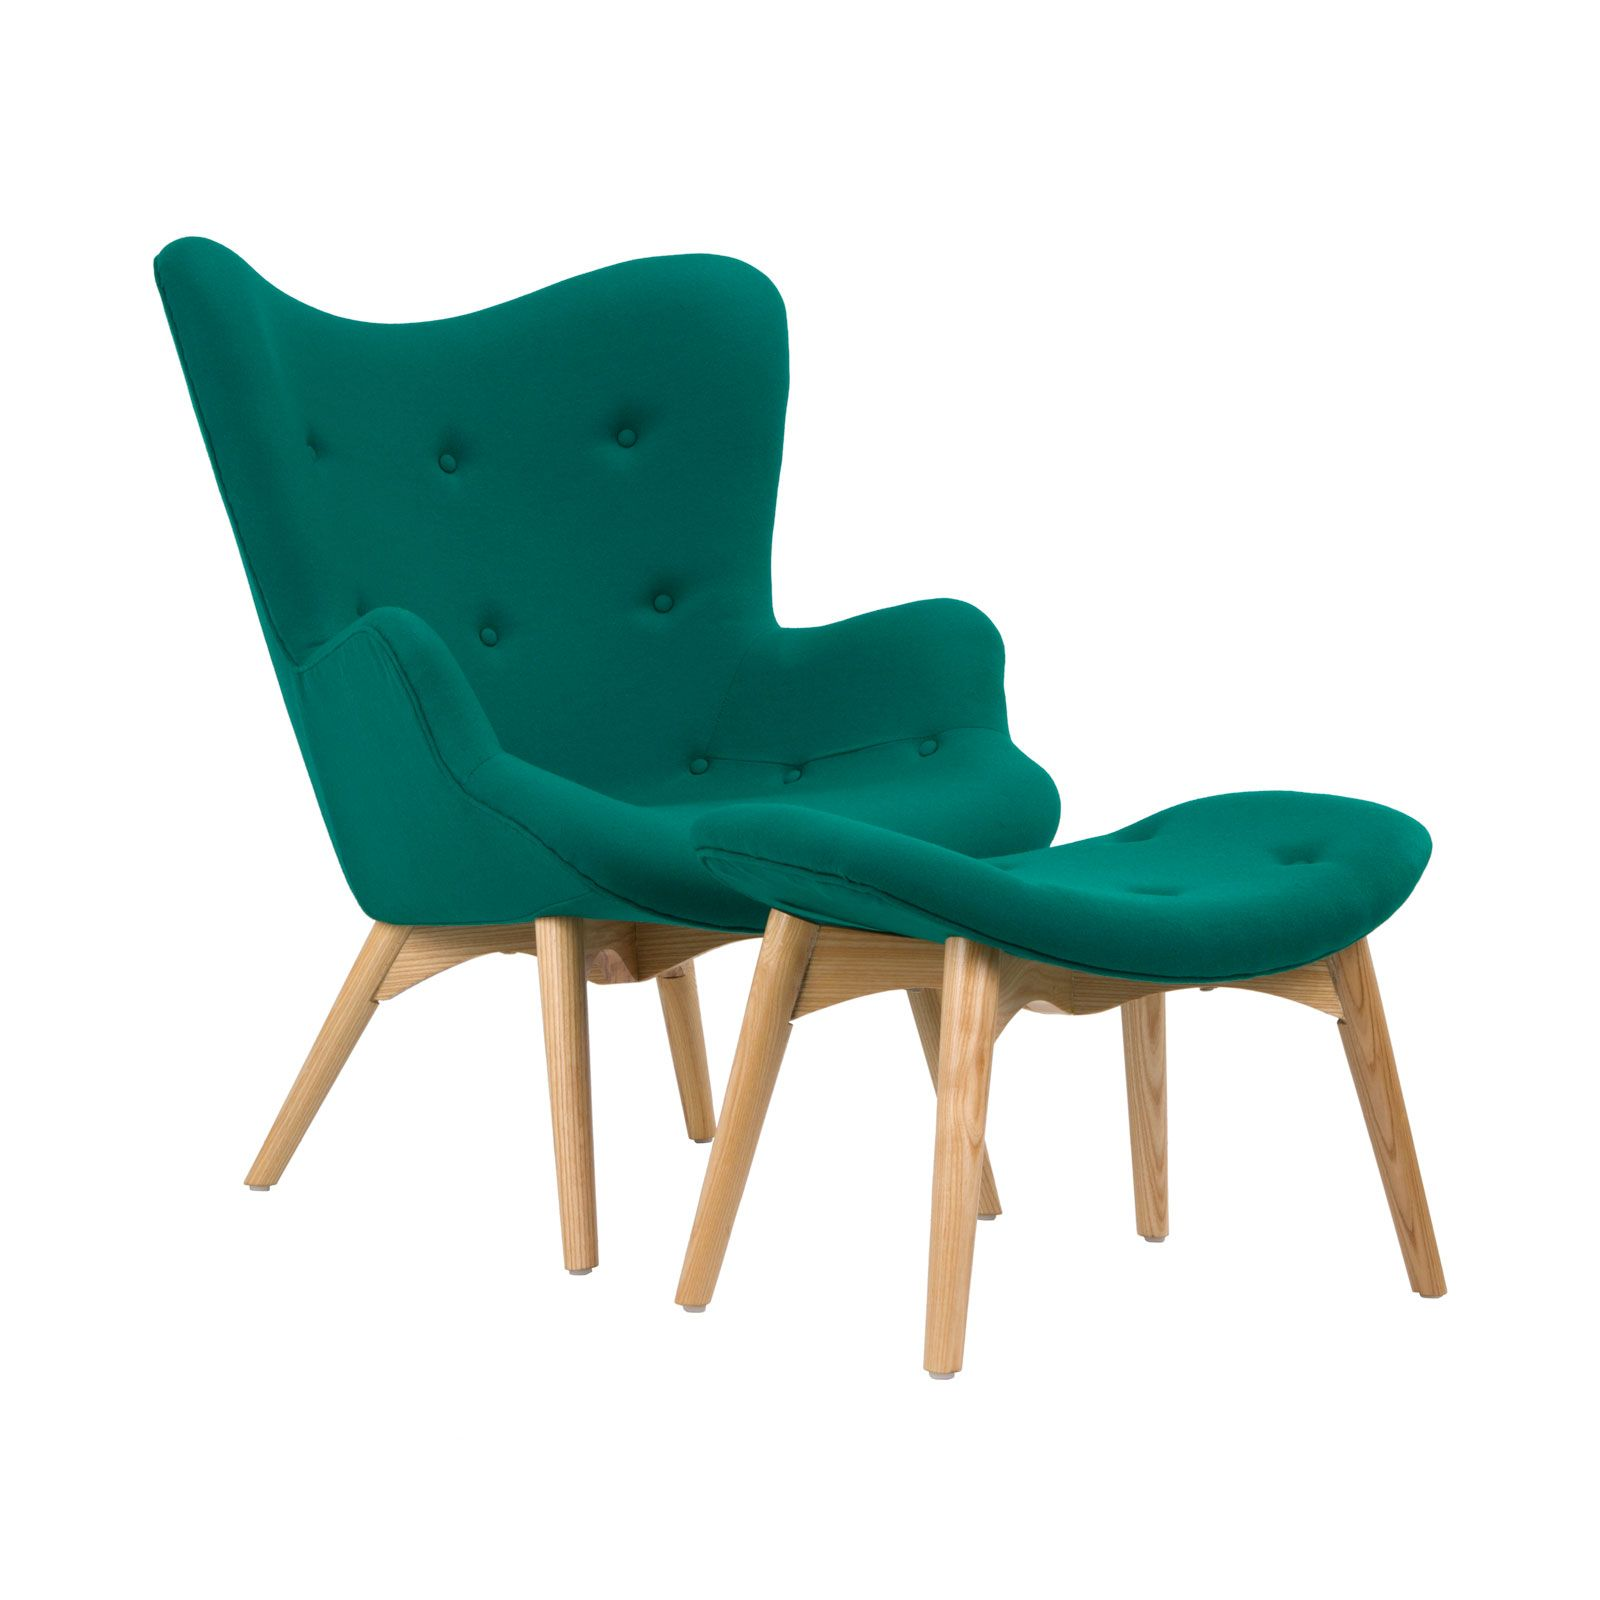 Mid century modern chairs - Mid Century Prop Your Feet Up And Sit Back For A Most Relaxing Experience Inspired By Mid Teal Chairmodern